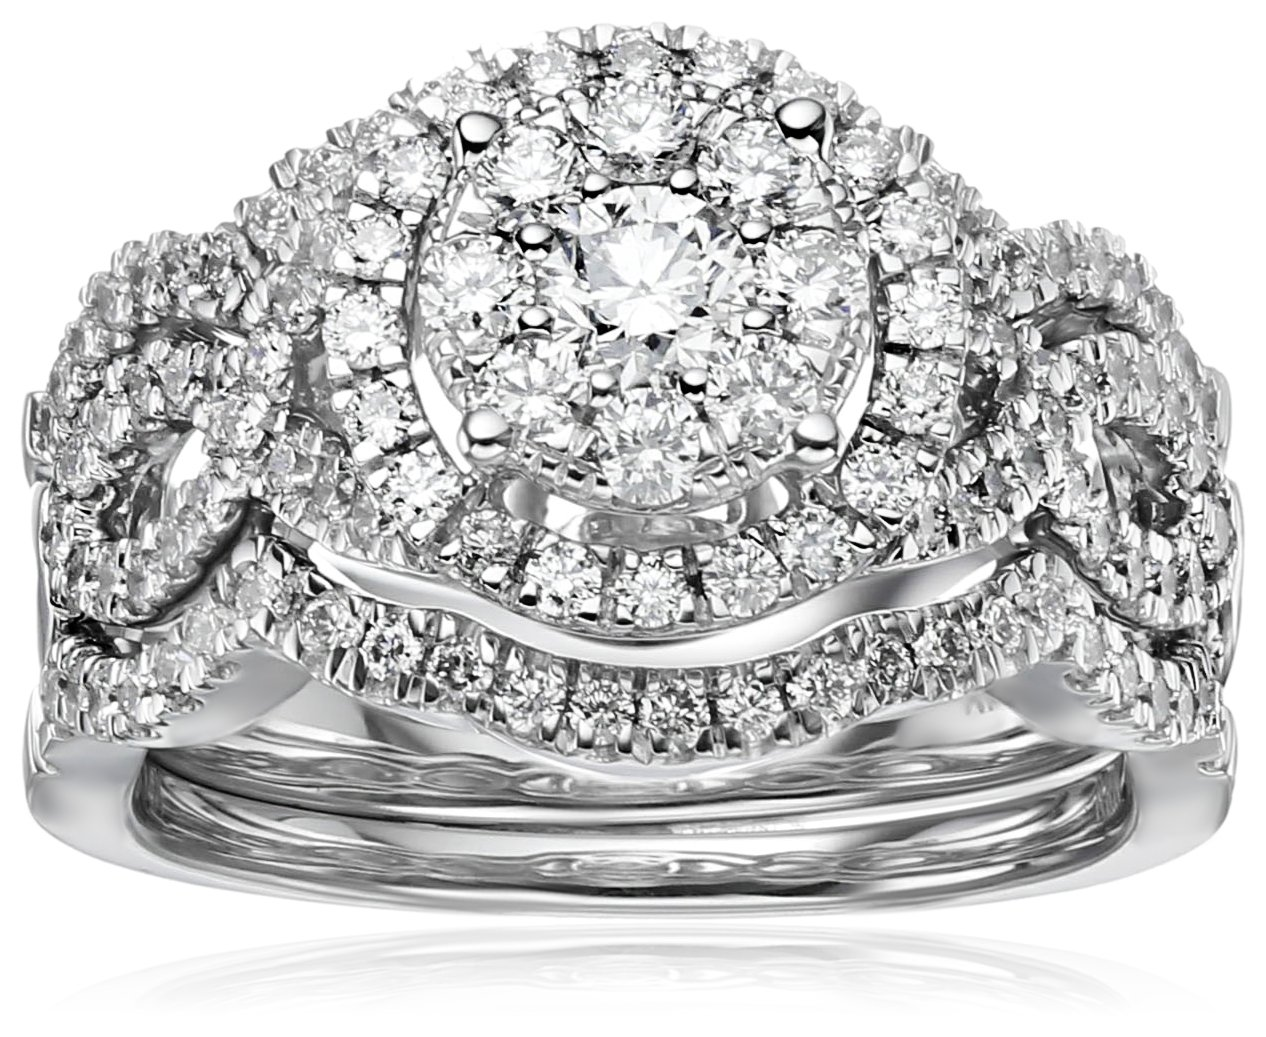 14k White Gold Diamond 3-Piece Wedding Ring Set (1 1/4 cttw, H-I Color, I1-I2 Clarity), Size 7